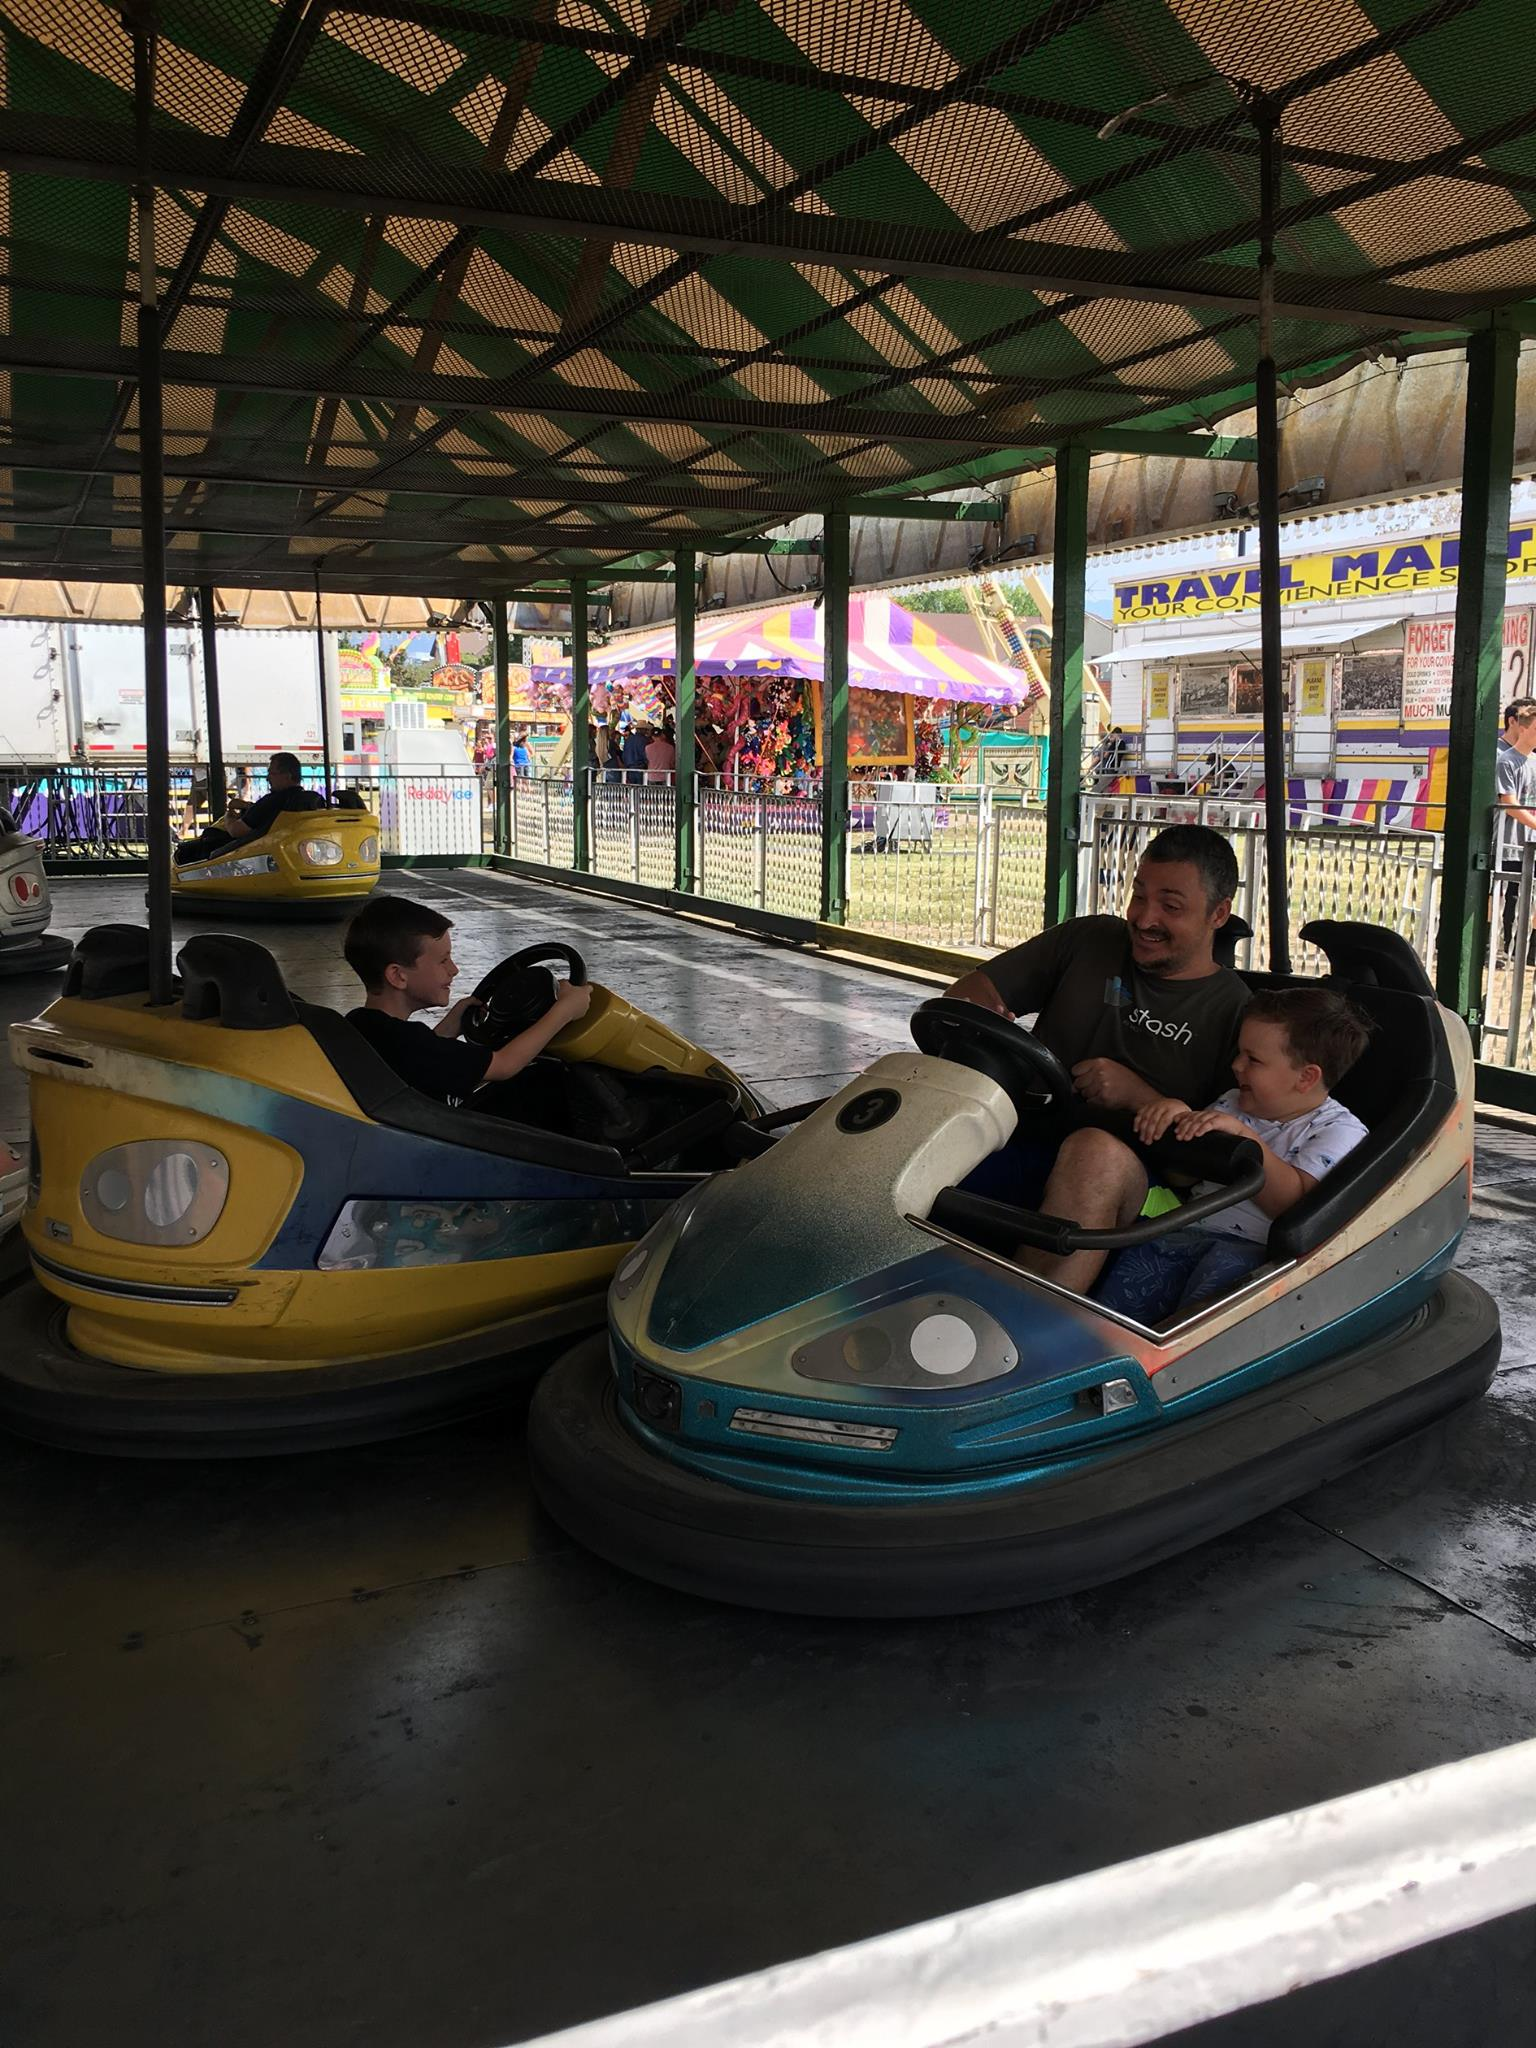 Bumper Cars at the State Fair